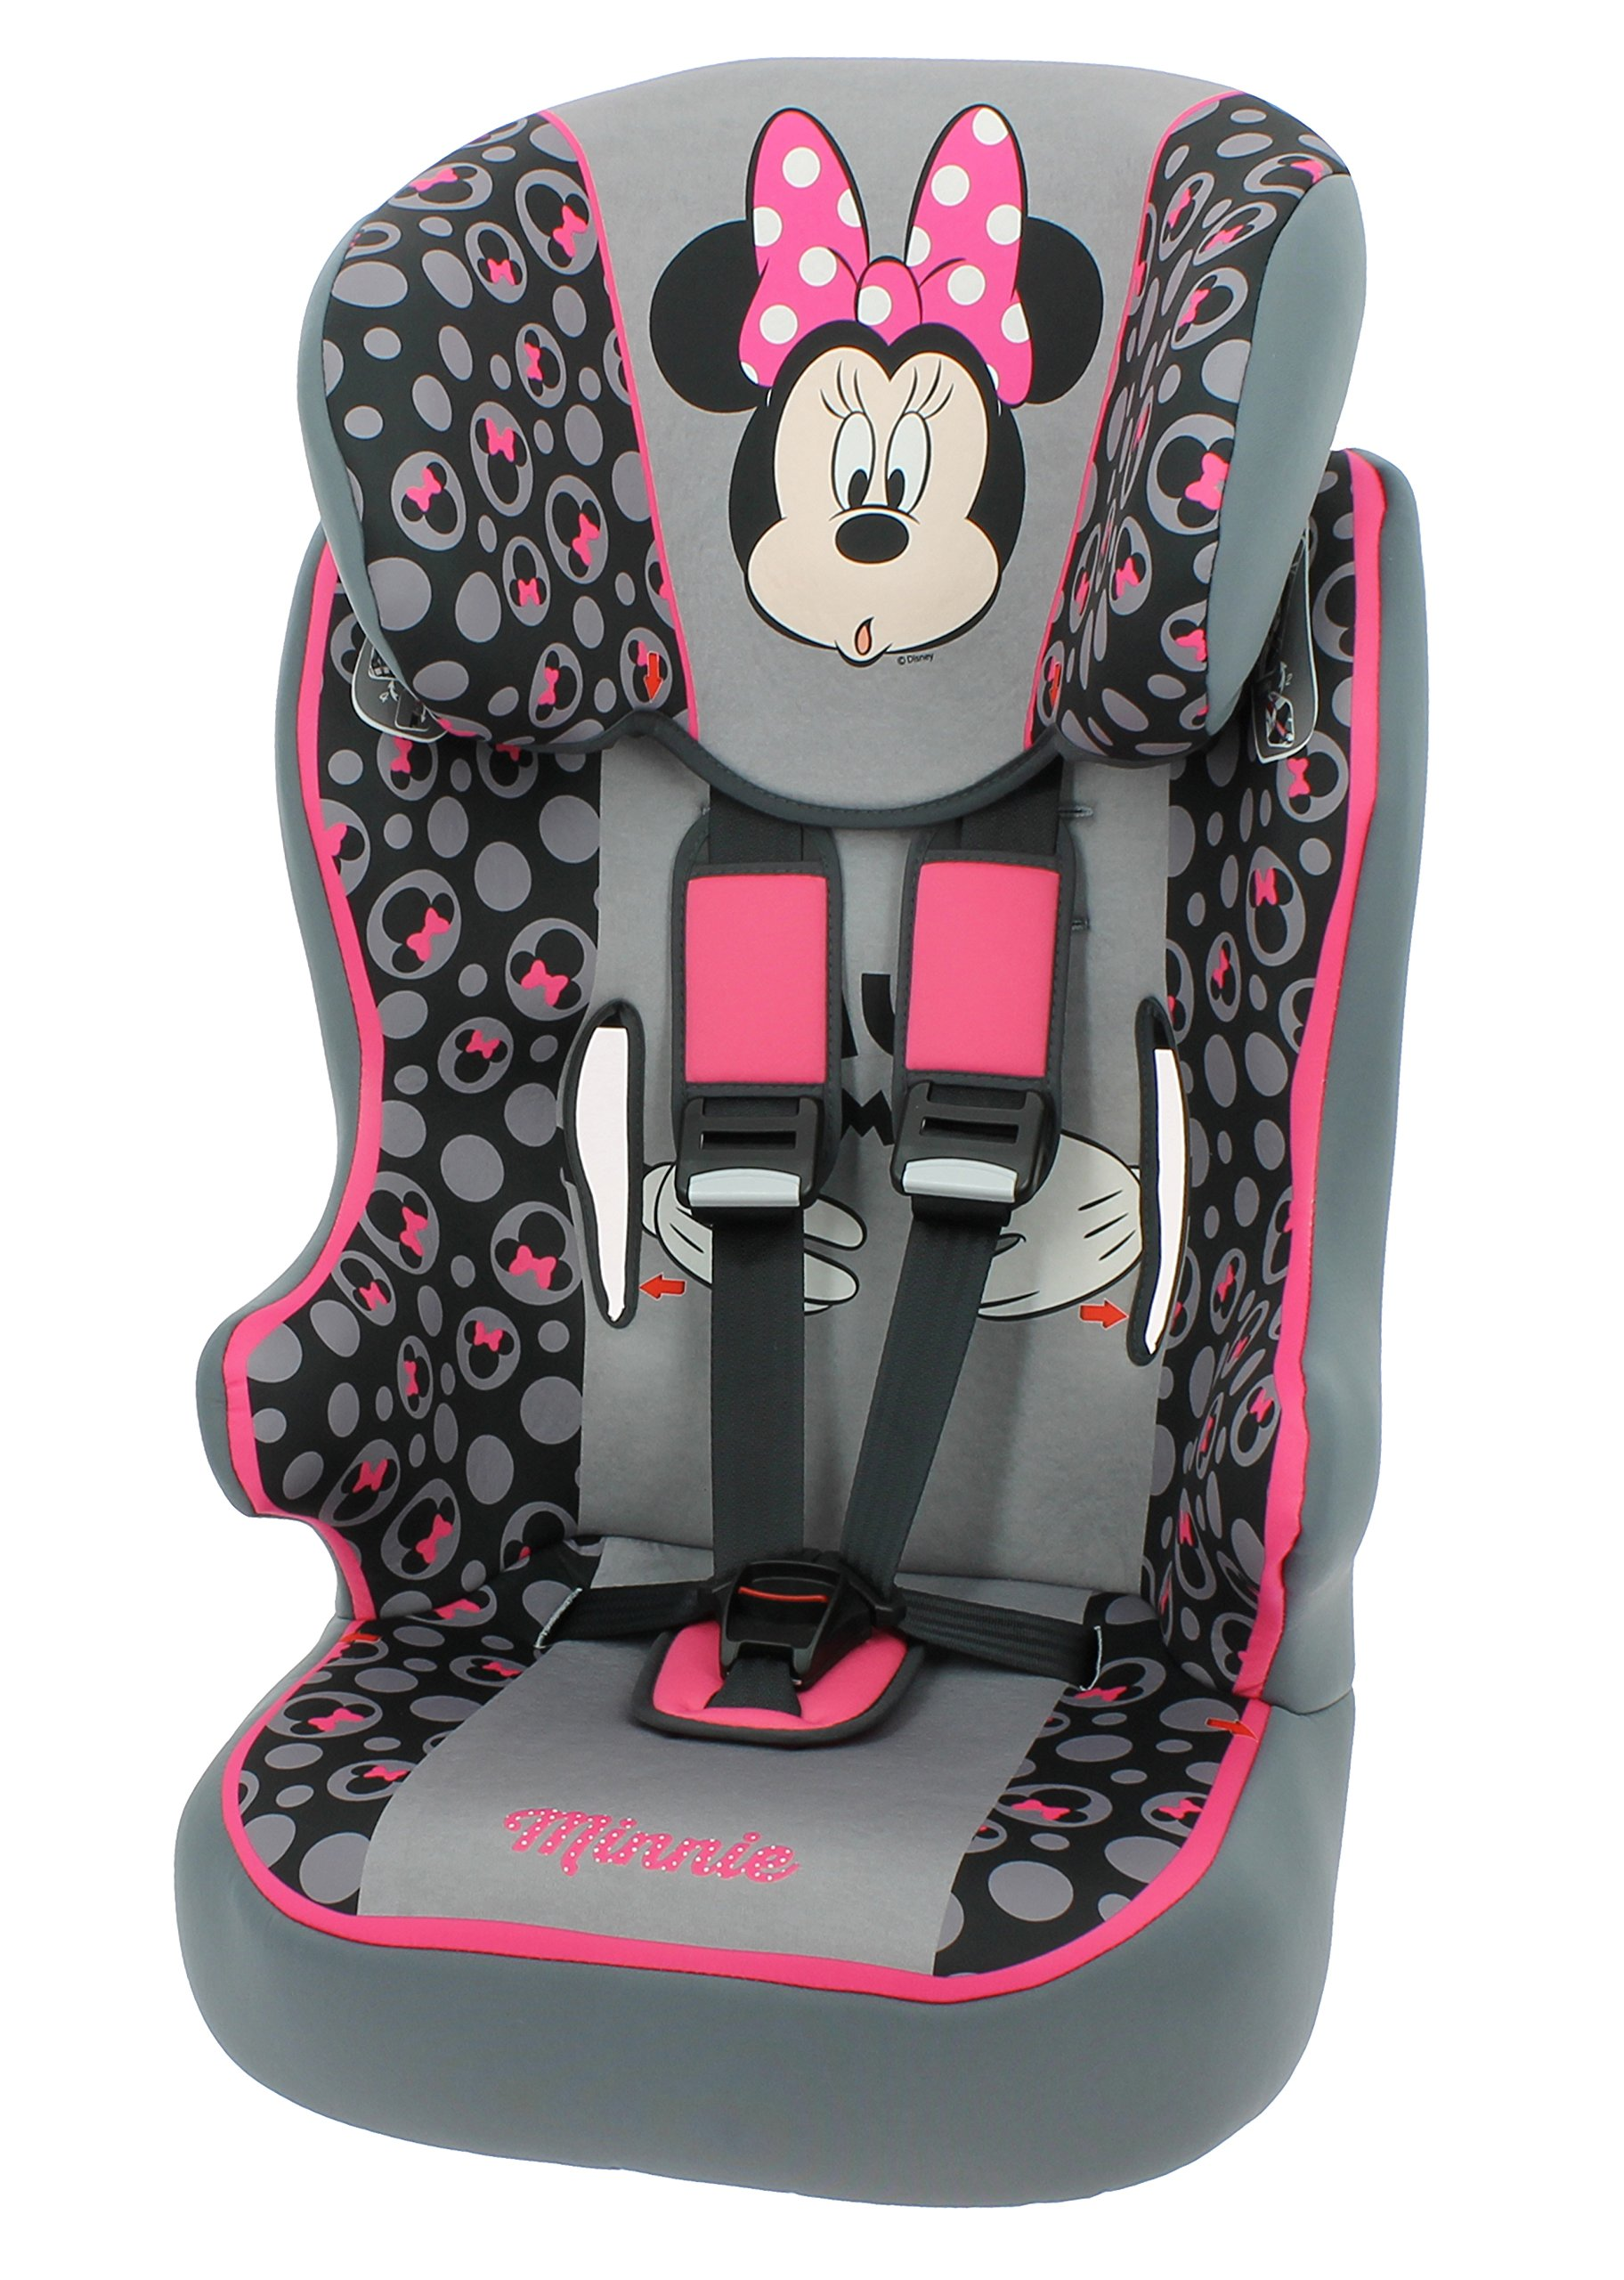 Racer Car Seat for Kids, Group 1/2/3 (9 to 36 kg), Disney Minnie  Lightweight, portable and secured car seat Side impact protection Individual harness tensioners 1